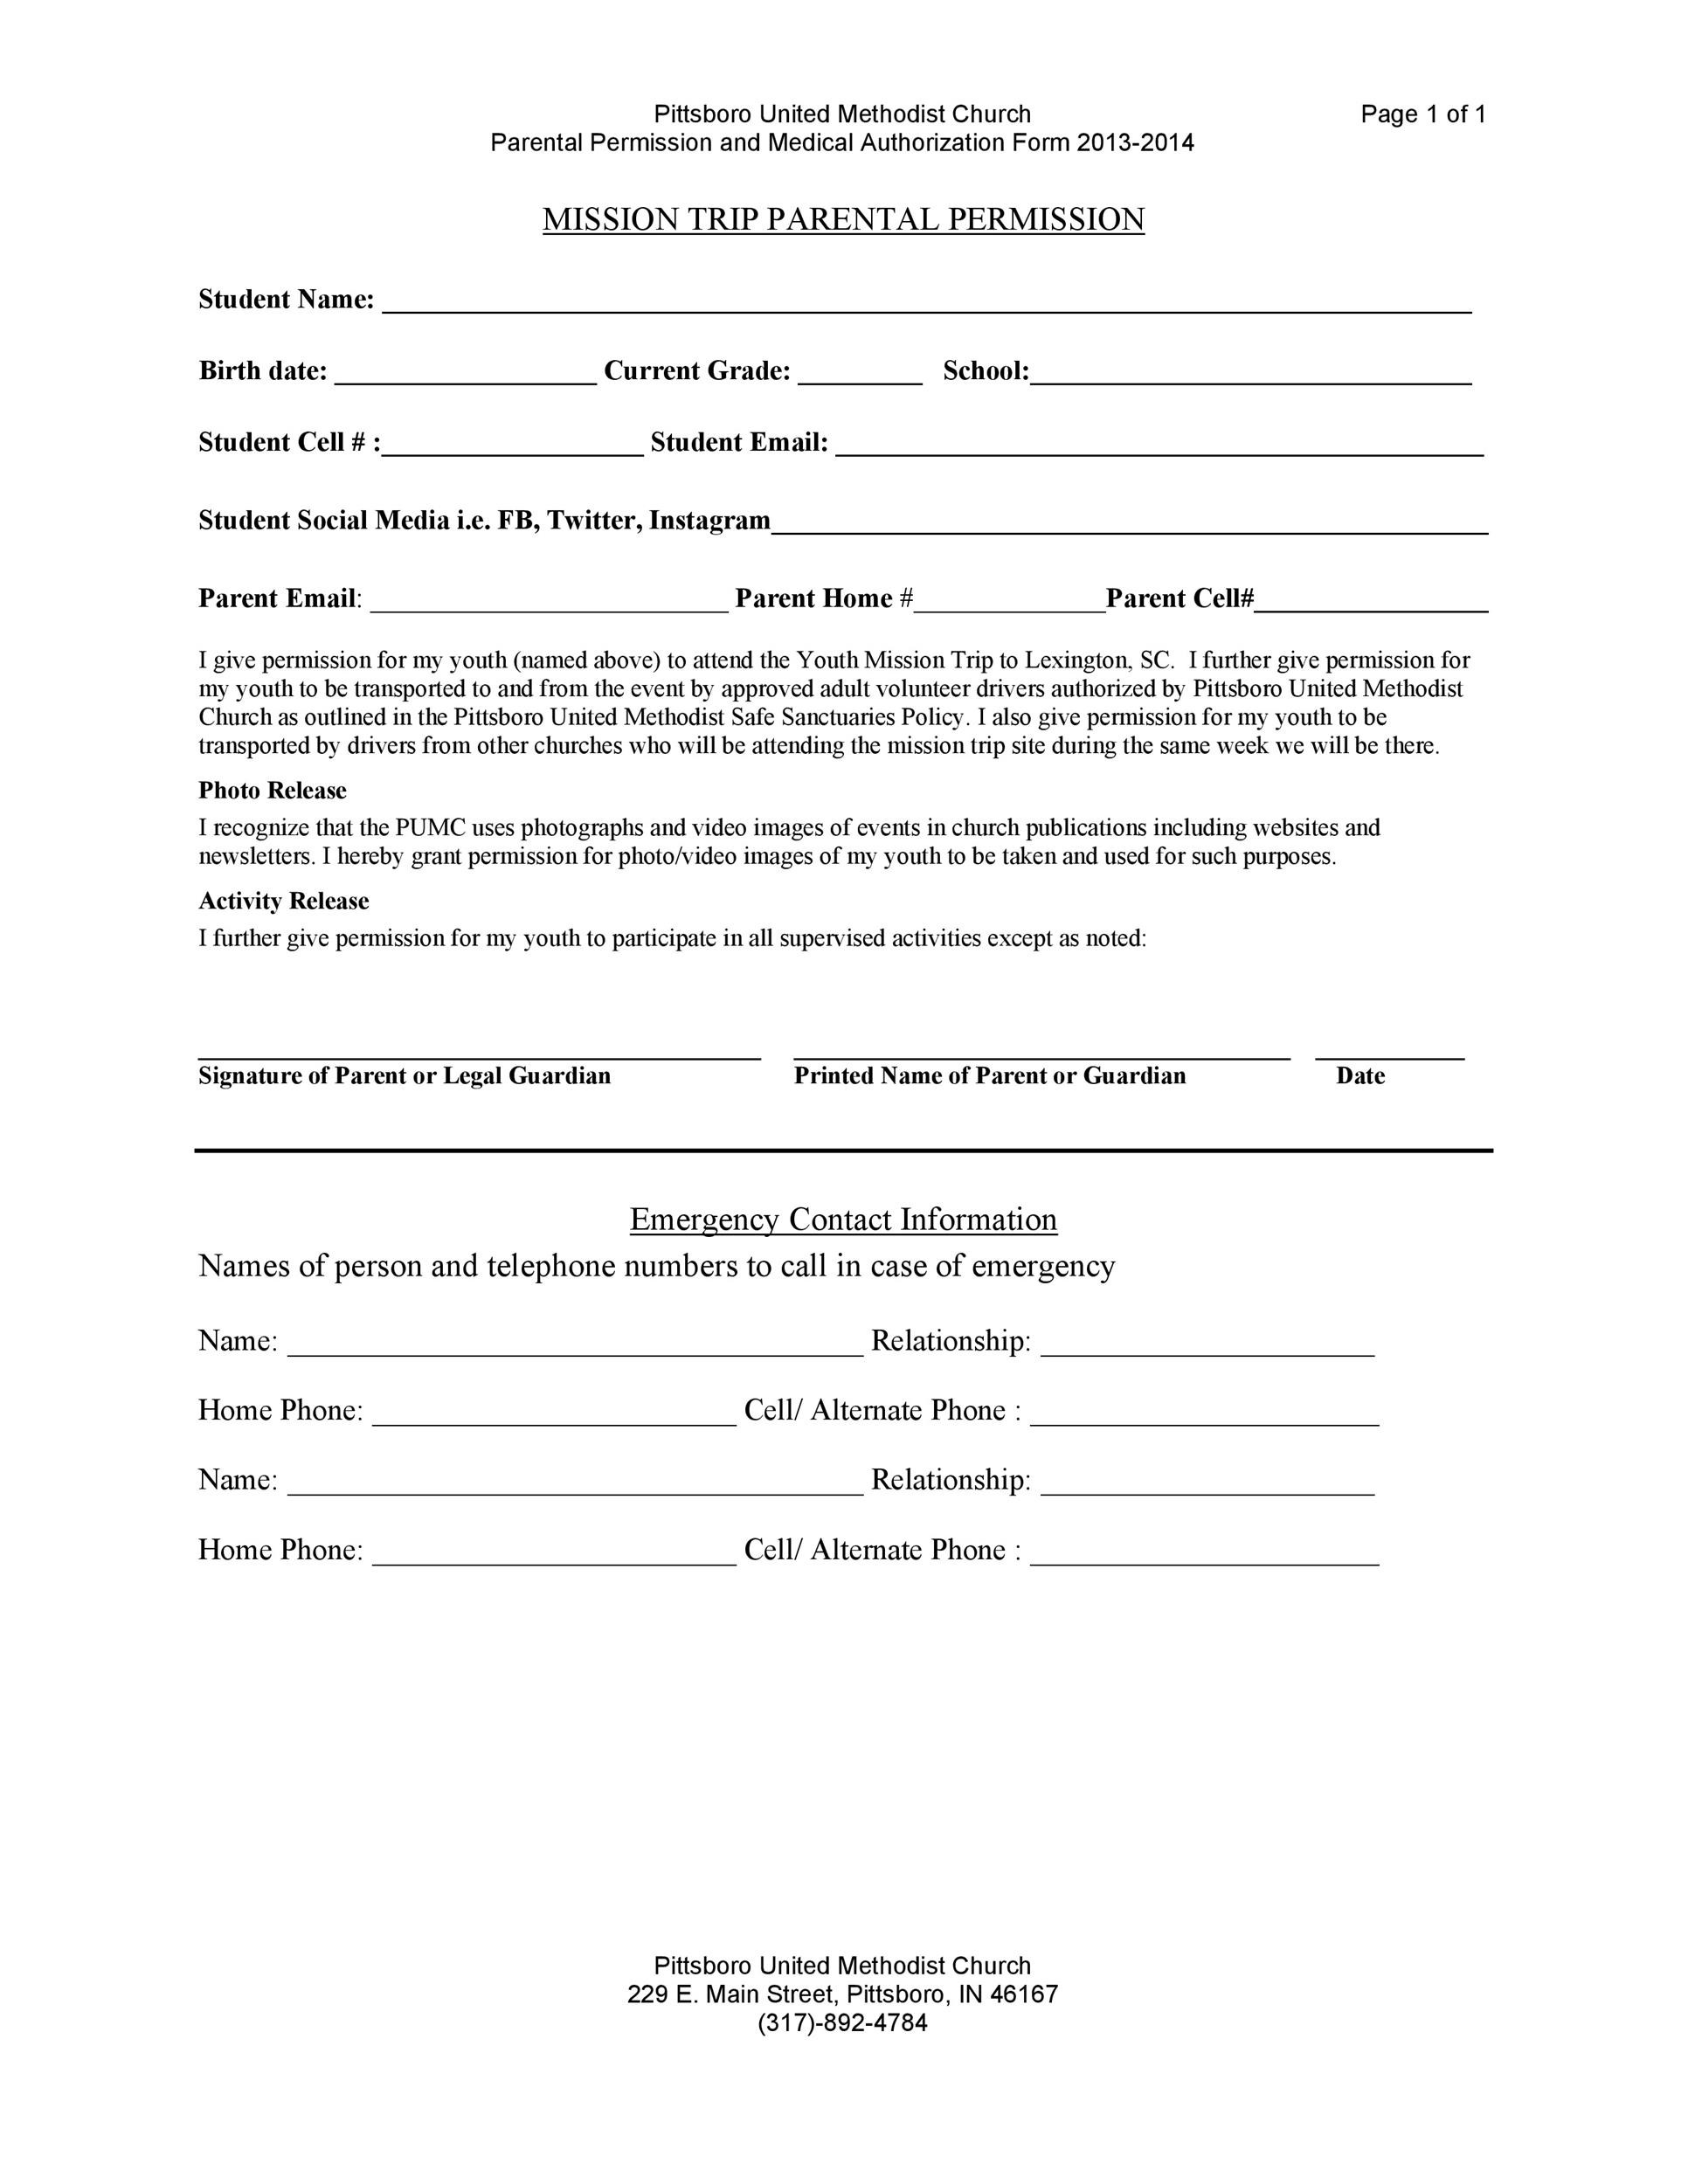 35 Permission Slip Templates & Field Trip Forms